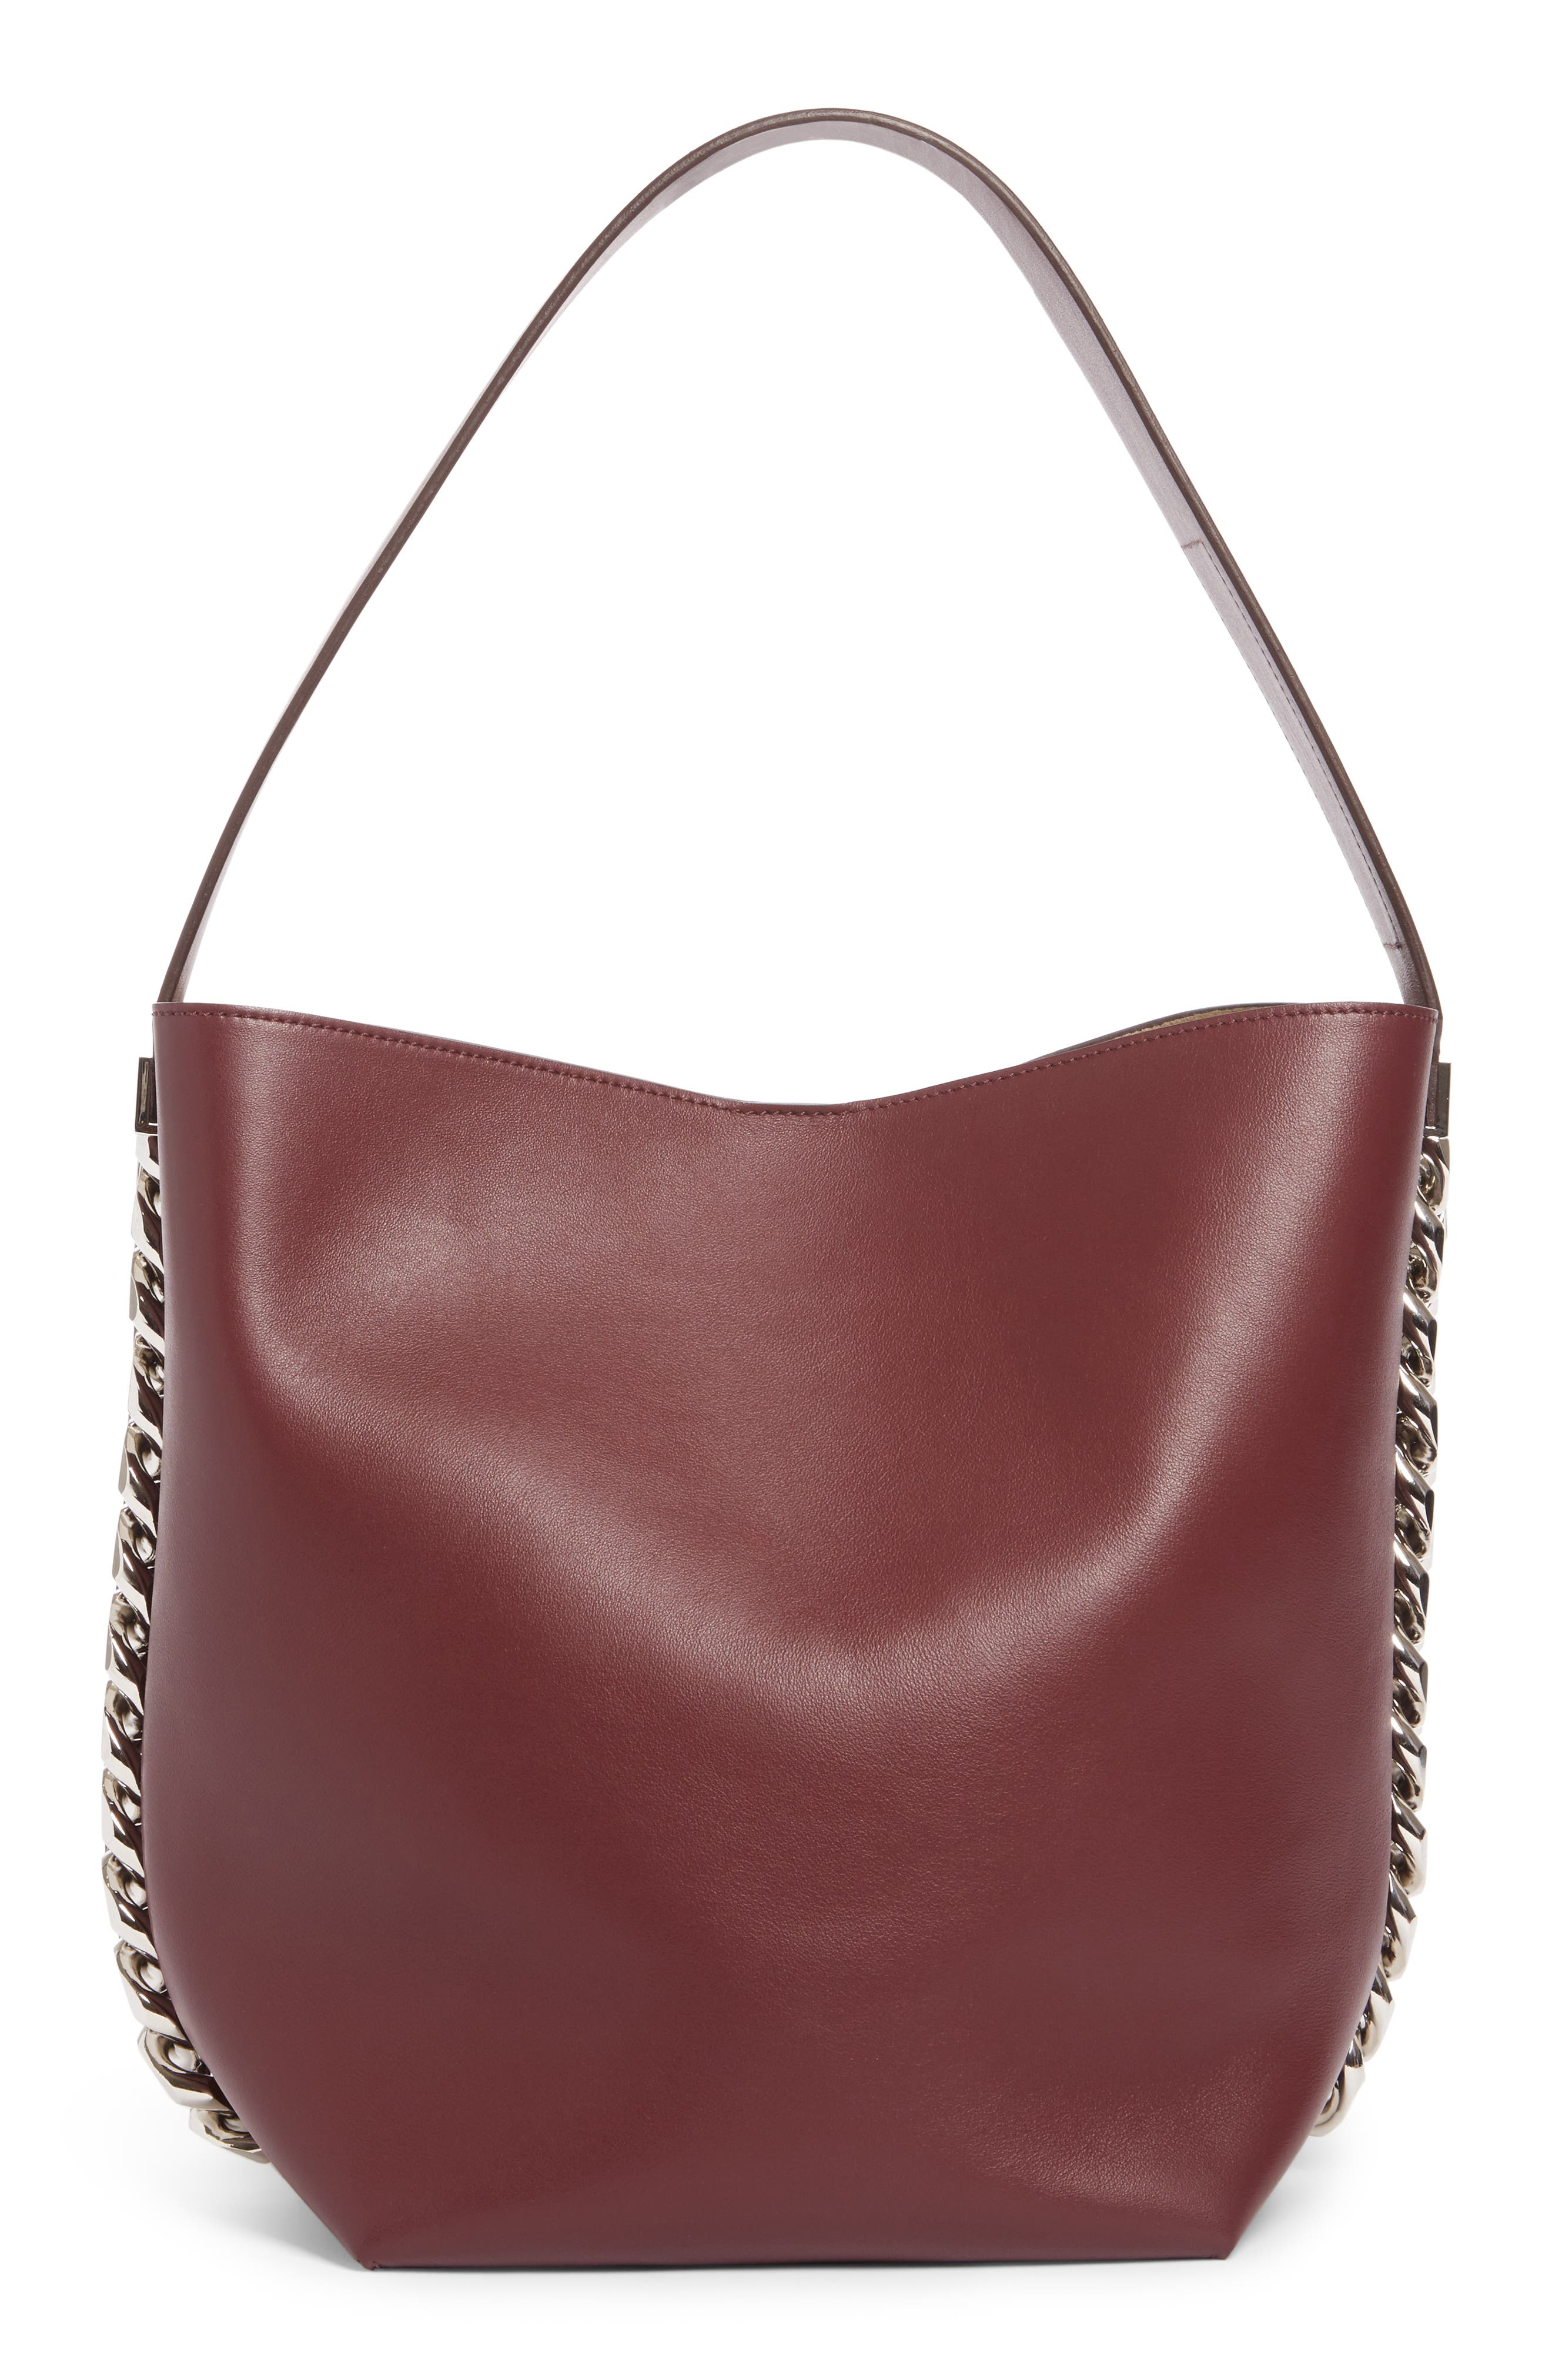 Infinity Calfskin Leather Bucket Bag,                             Alternate thumbnail 3, color,                             Oxblood